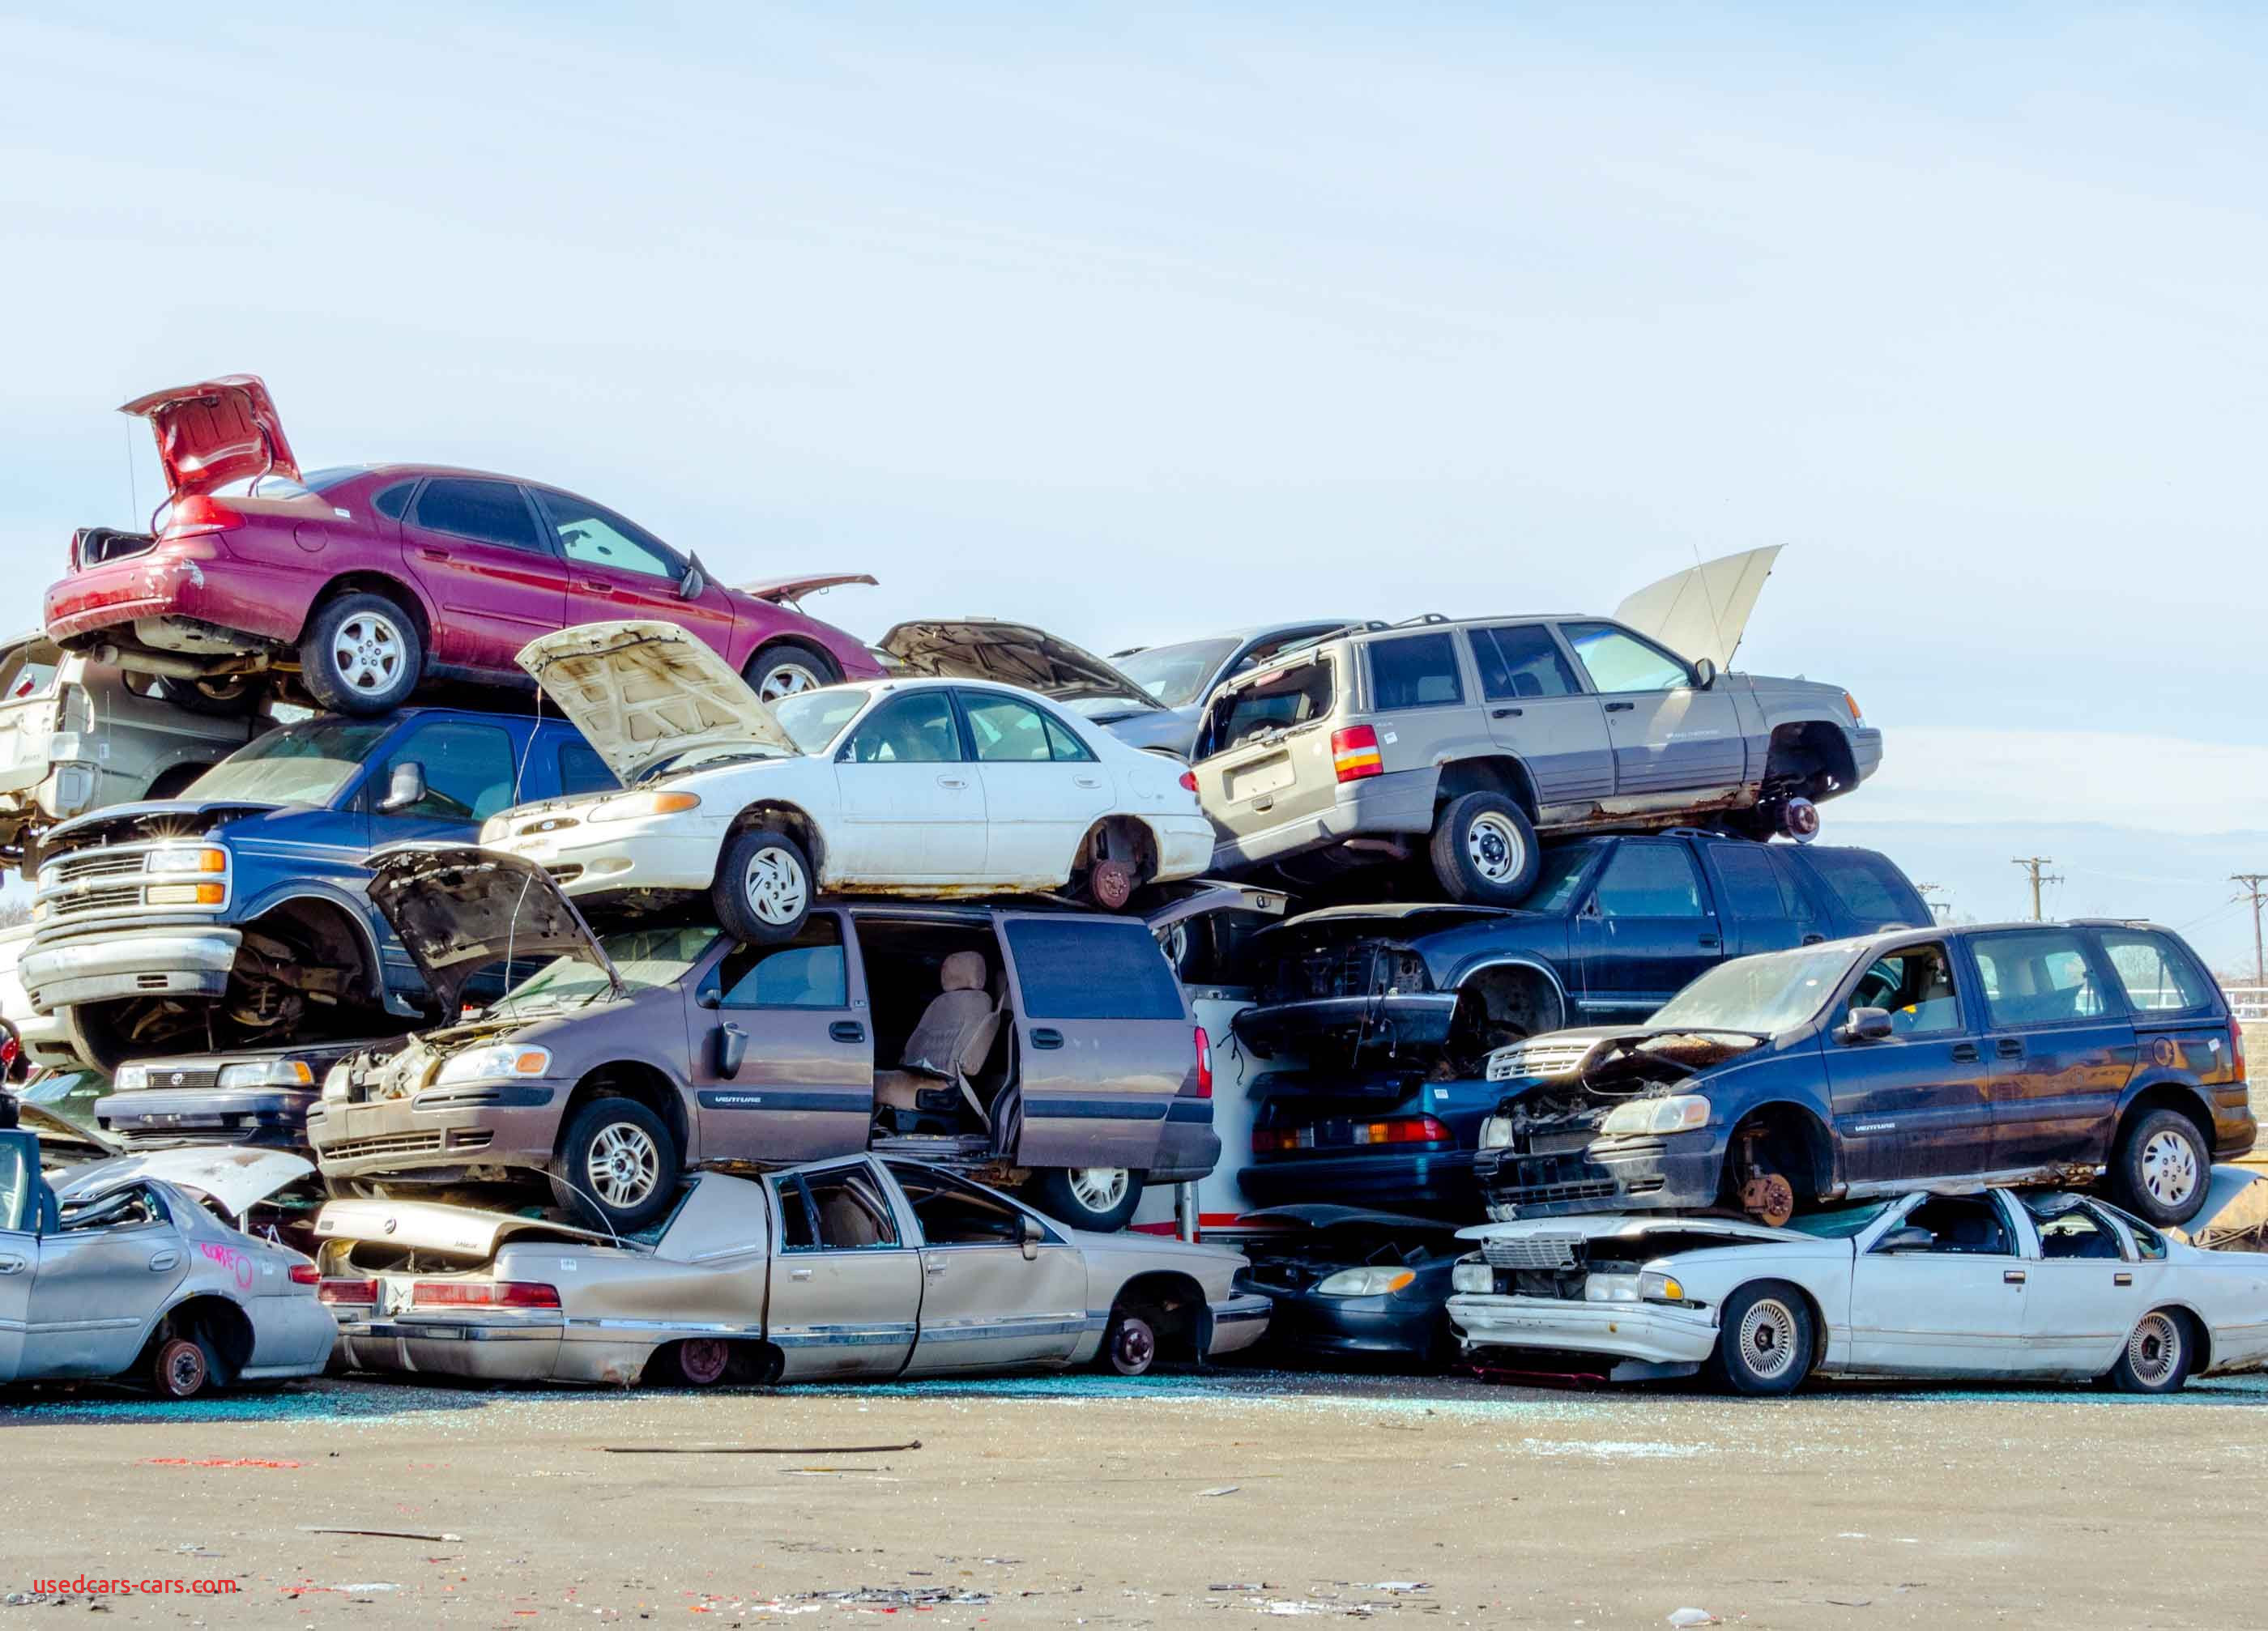 Used Cars for Sale Mississauga Unique Amiry Enterprises is A Leading Carwrecker Pany In